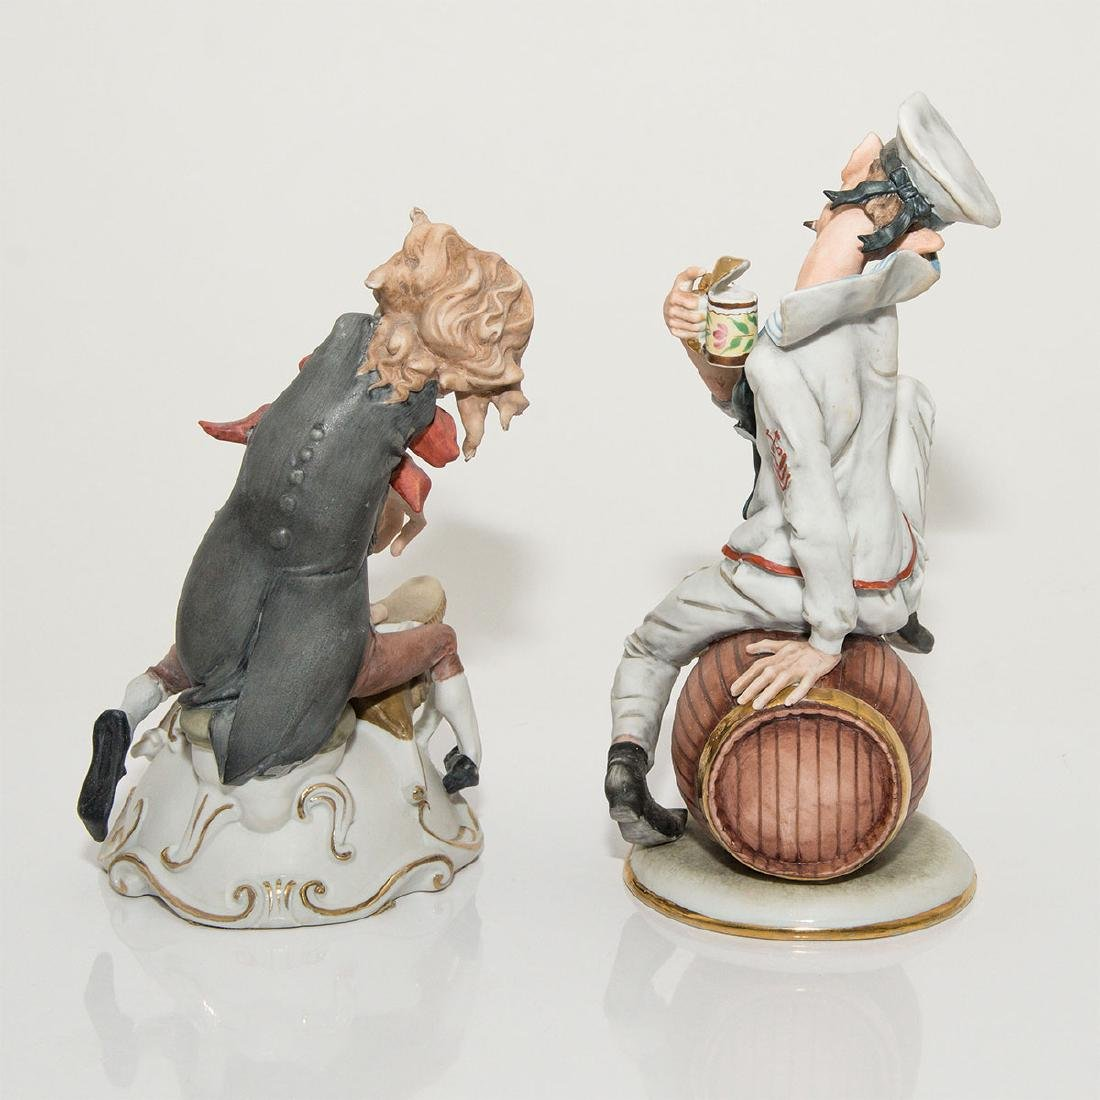 GROUP OF 2 CARICATURE PORCELAIN FIGURINES - 3